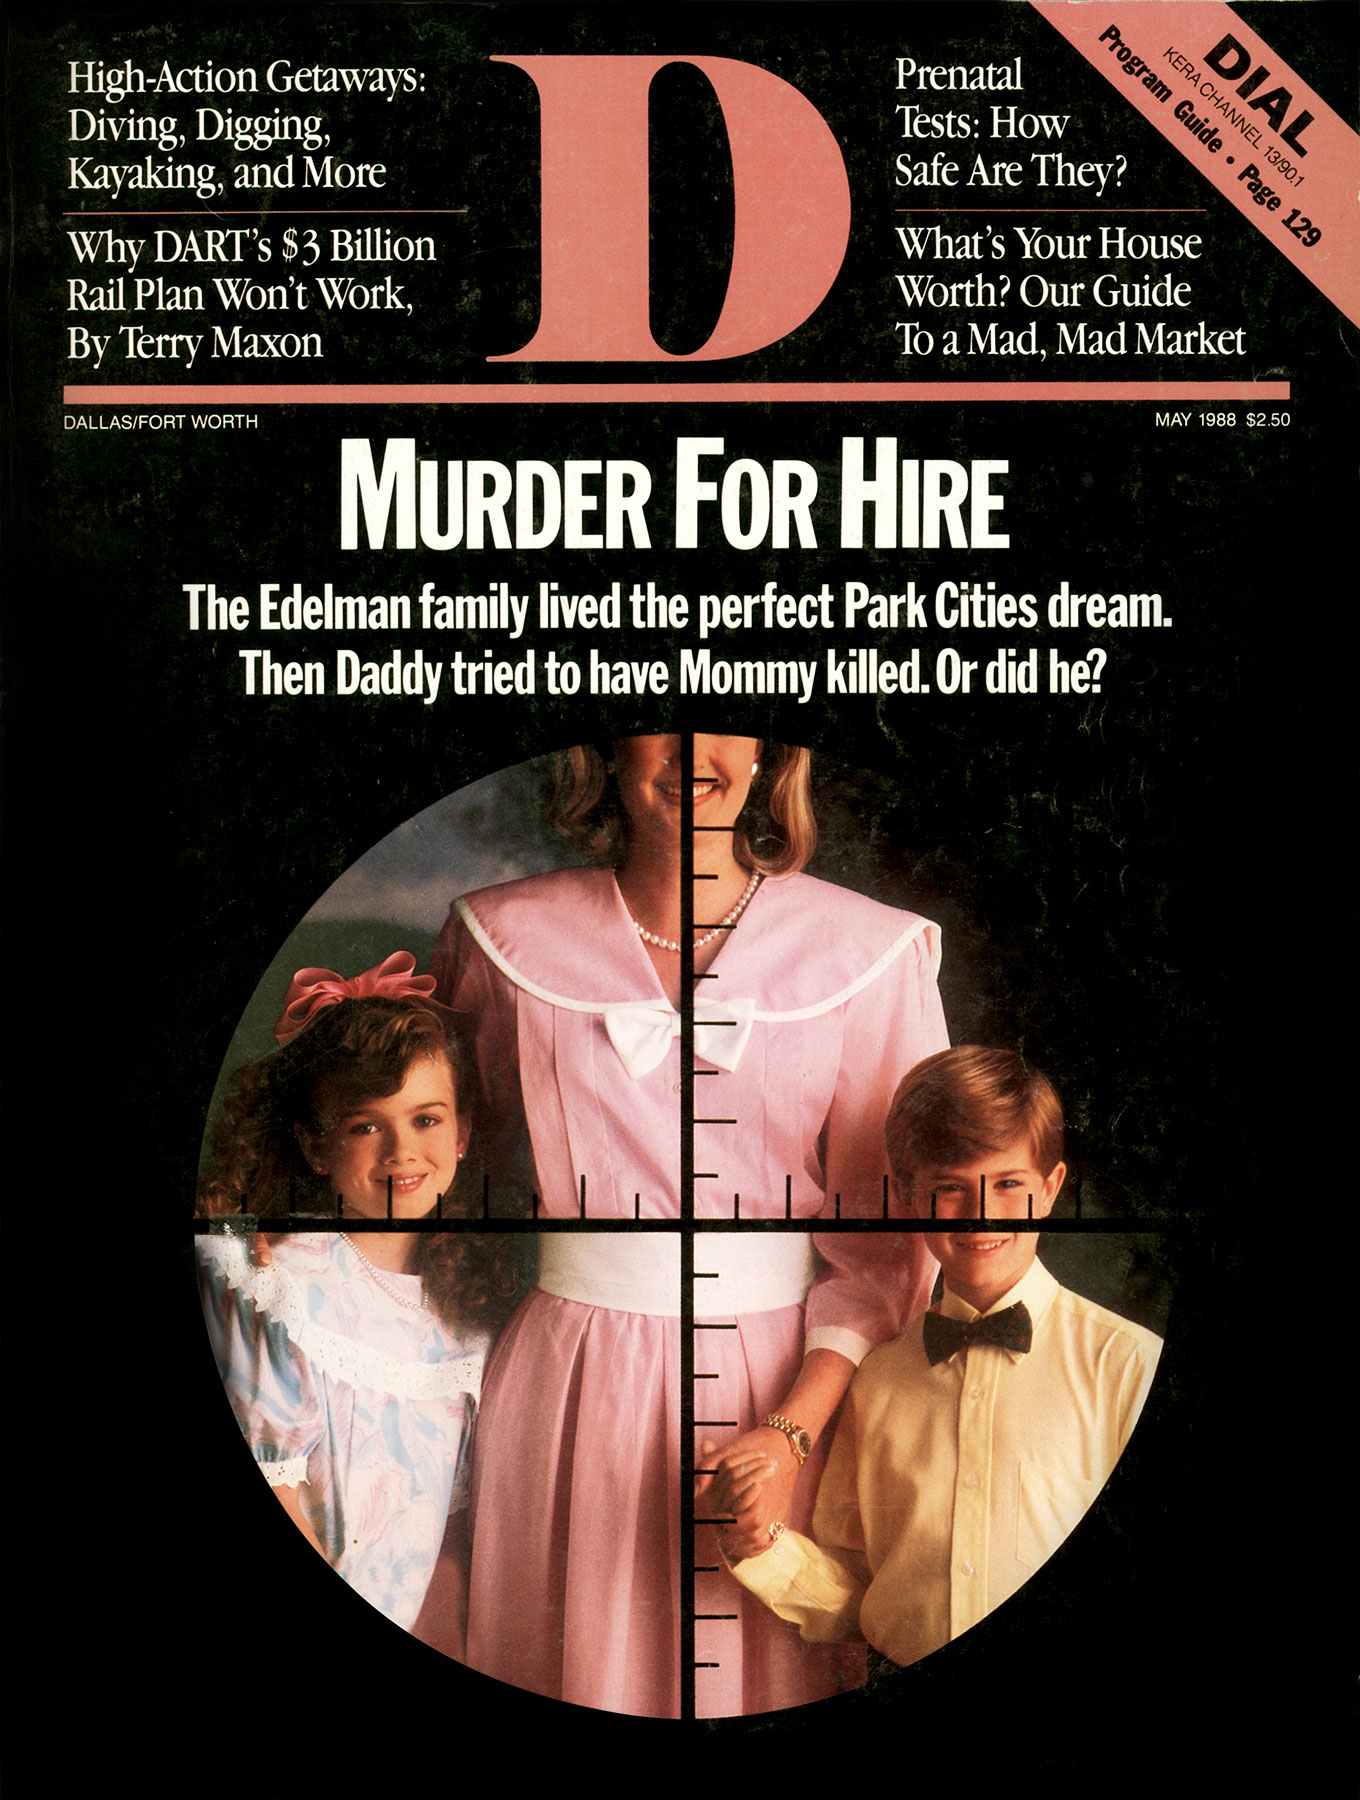 May 1988 cover